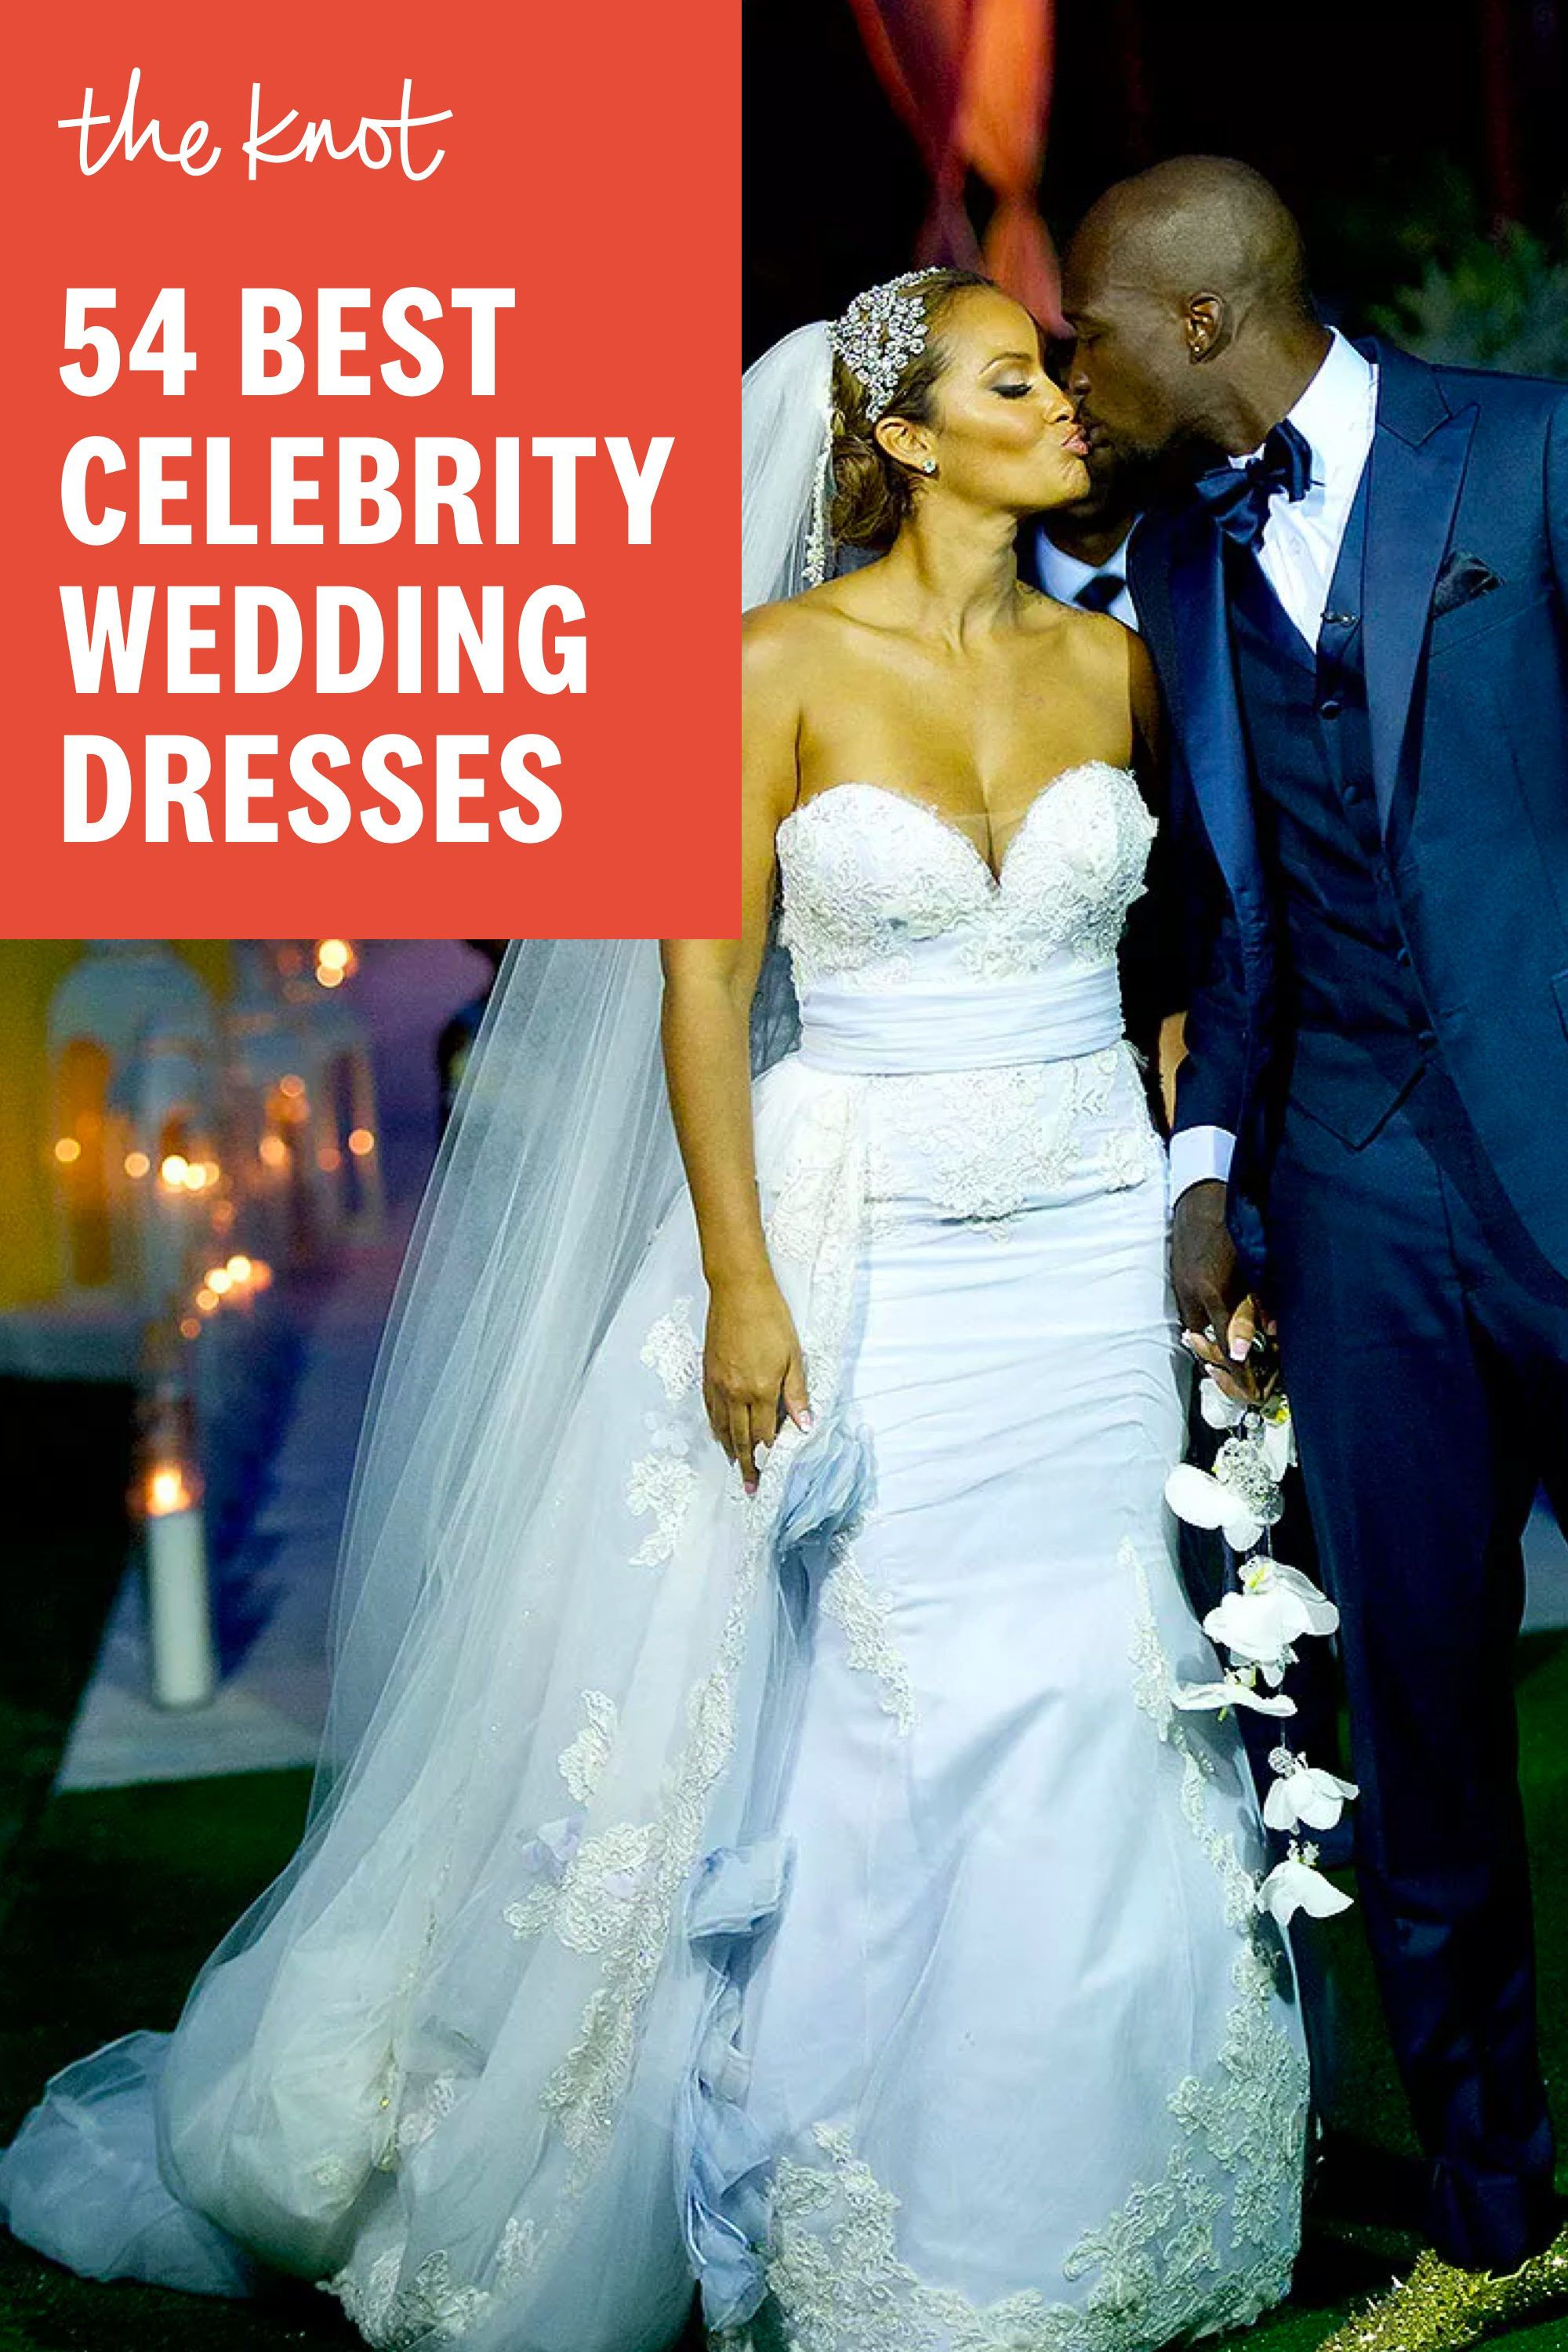 The 52 Best Celebrity Wedding Dresses Of All Time Celebrity Wedding Dresses Wedding Dresses Celebrity Weddings [ 3000 x 2000 Pixel ]